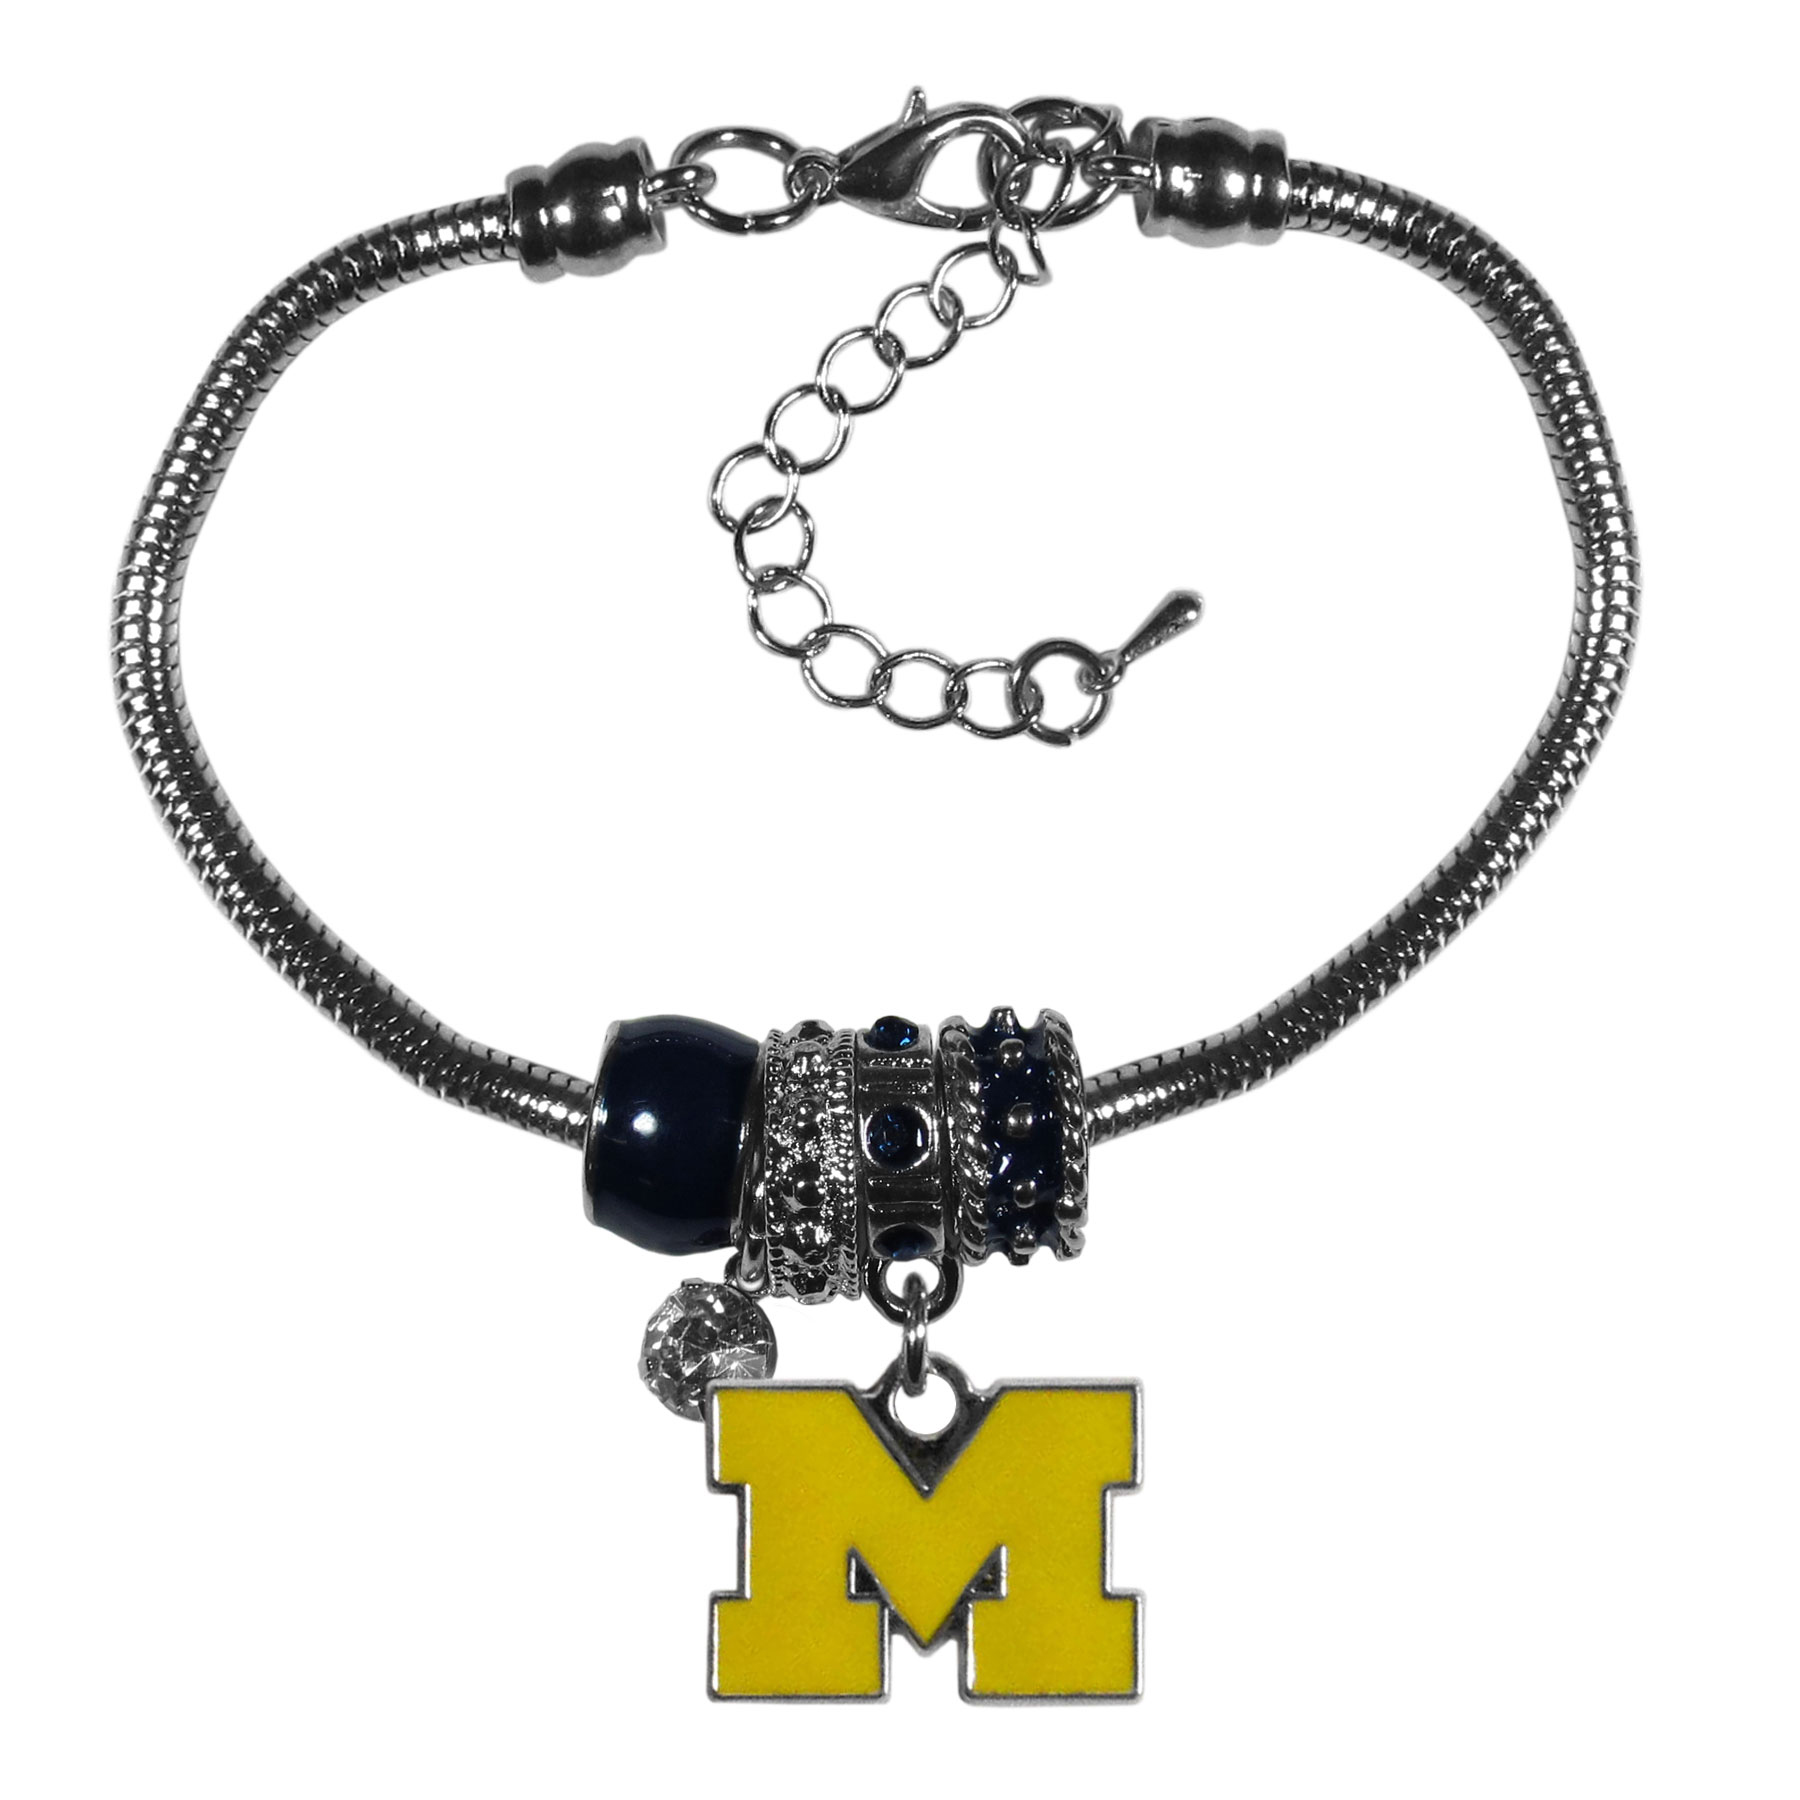 Michigan Wolverines Euro Bead Bracelet - We have combined the wildly popular Euro style beads with your favorite team to create our  Michigan Wolverines bead bracelet. The 7.5 inch snake chain with 2 inch extender features 4 Euro beads with enameled team colors and rhinestone accents with a high polish, nickel free charm and rhinestone charm. Perfect way to show off your team pride.